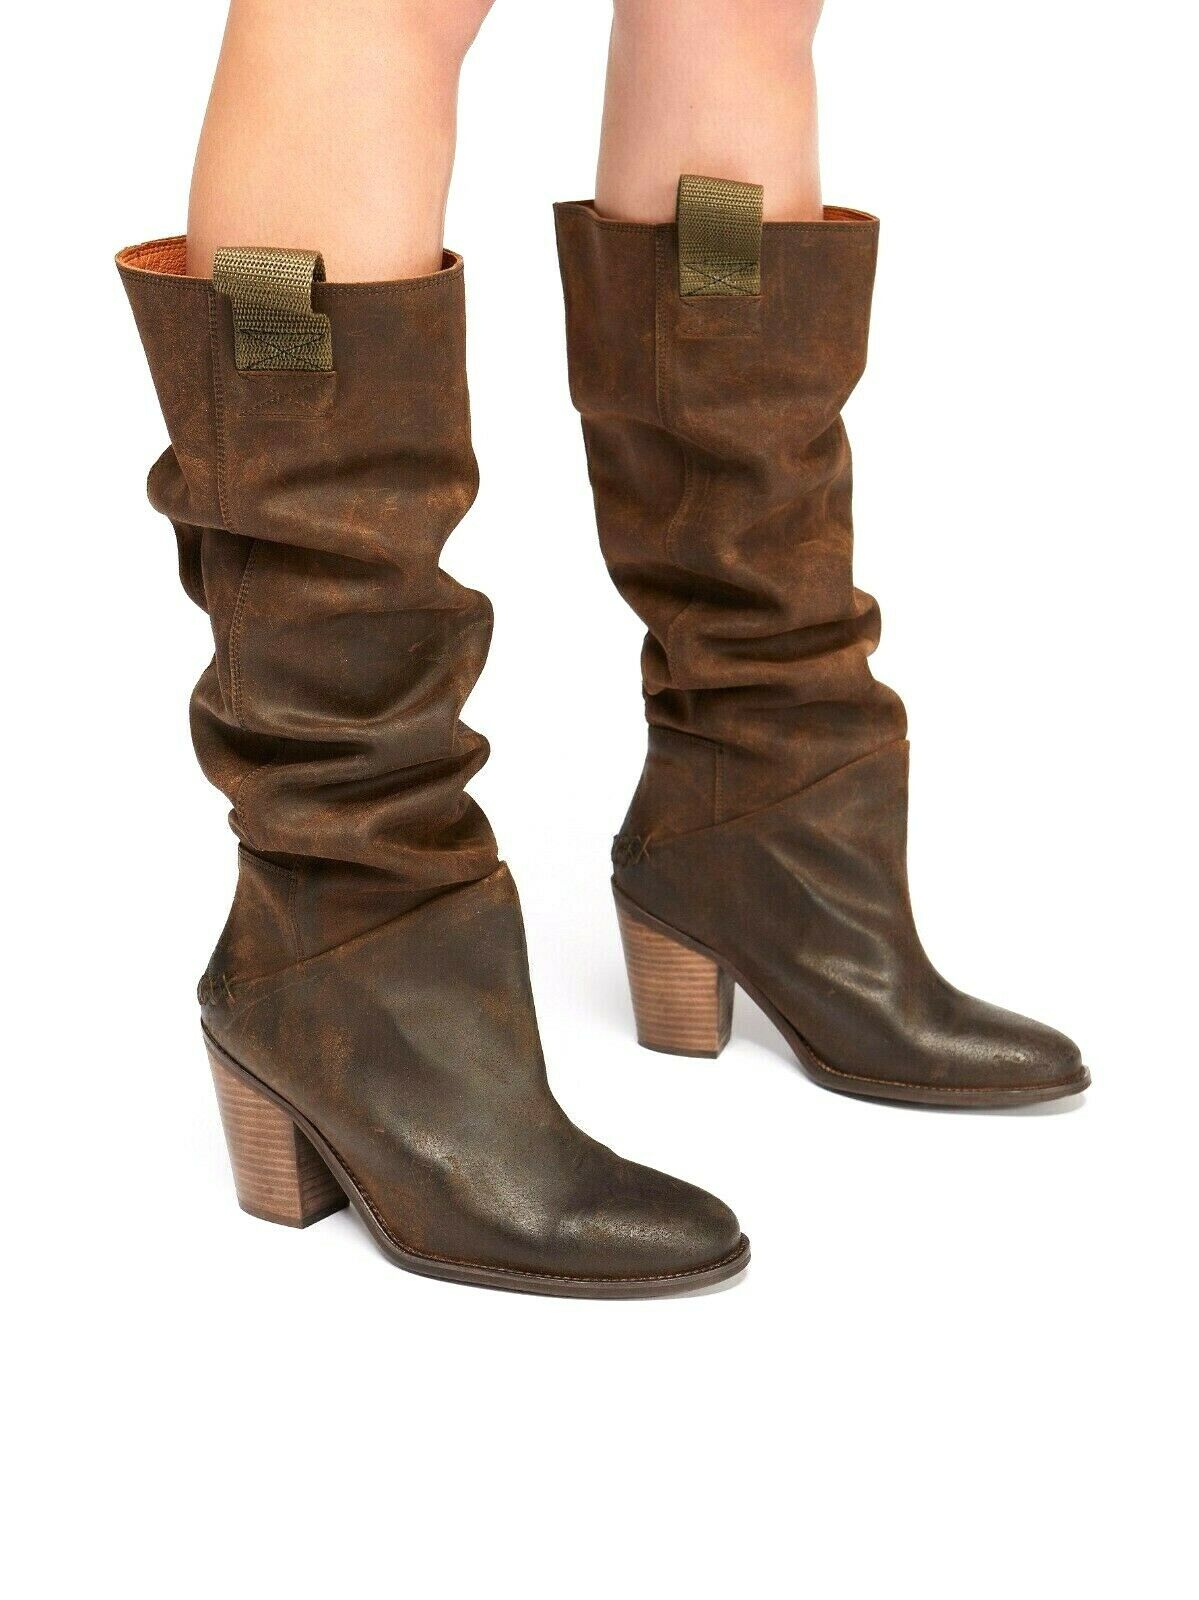 248 FREE PEOPLE  6, 7, 8.5 MONTGOMERY SLOUCH Stiefel SUEDE